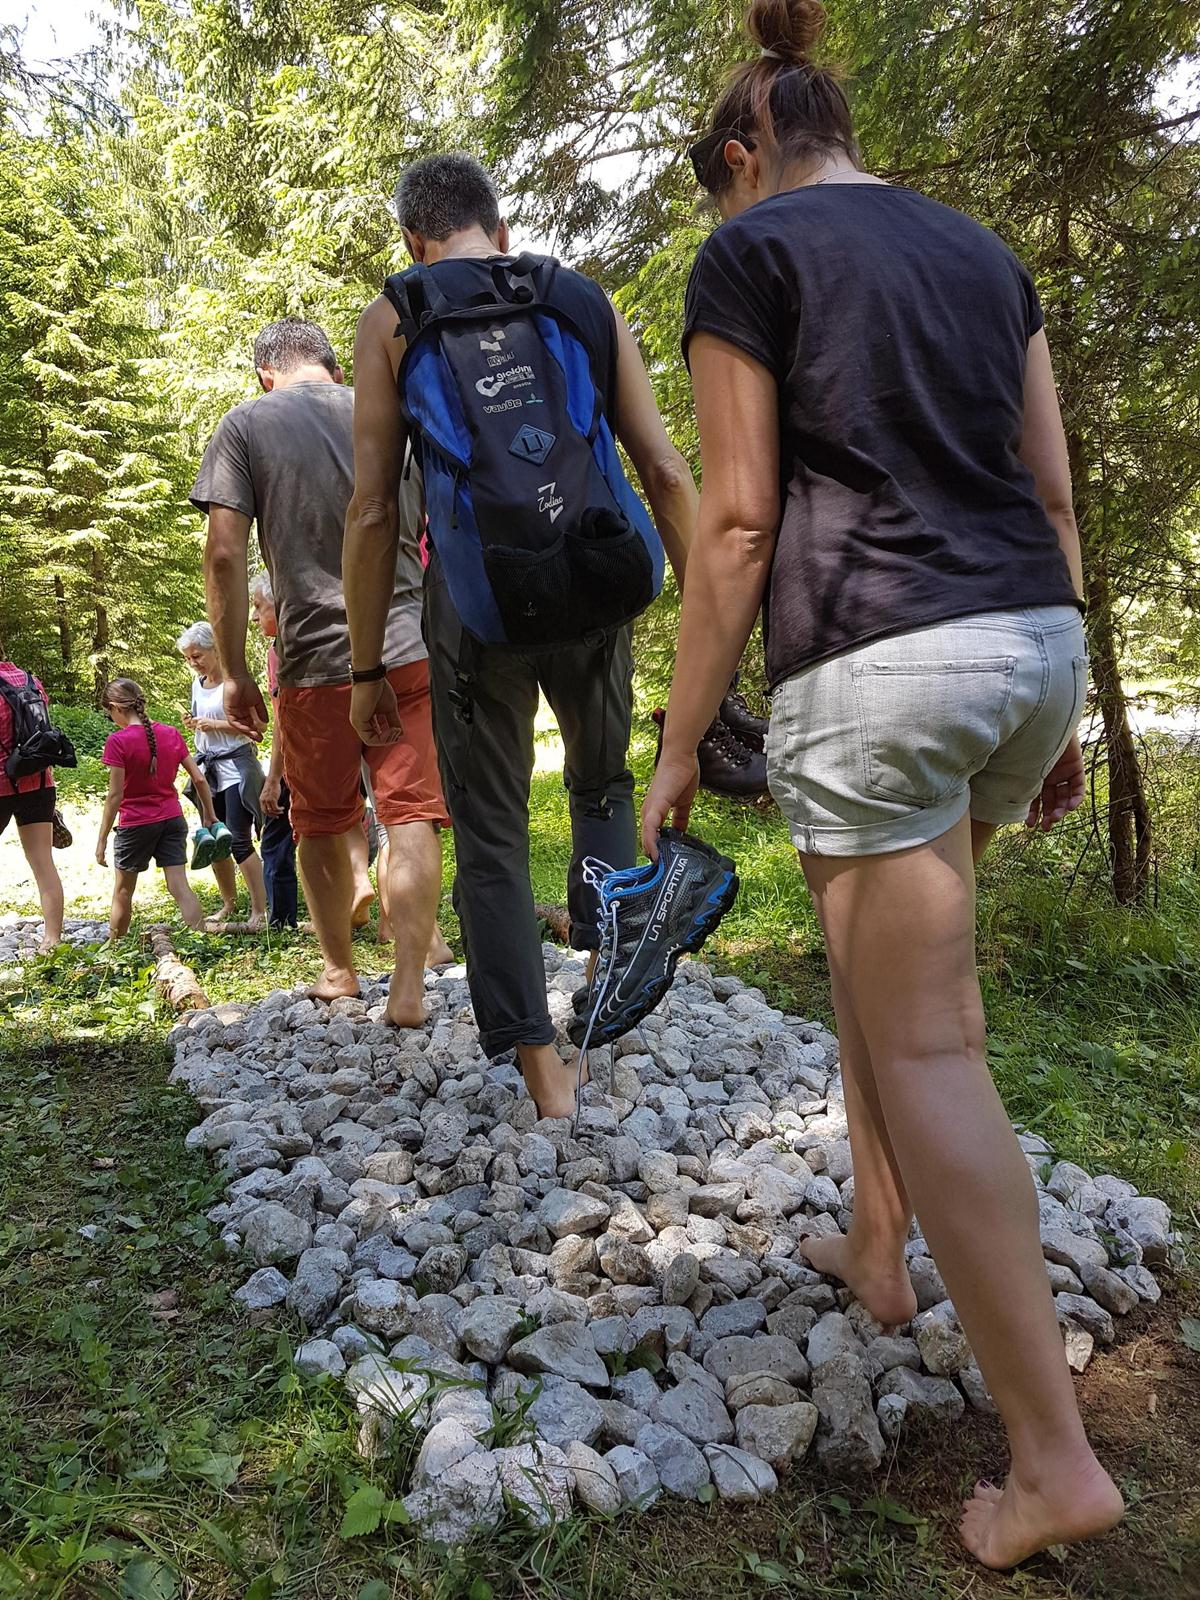 Dolomiti Natural Wellness bare foot trail